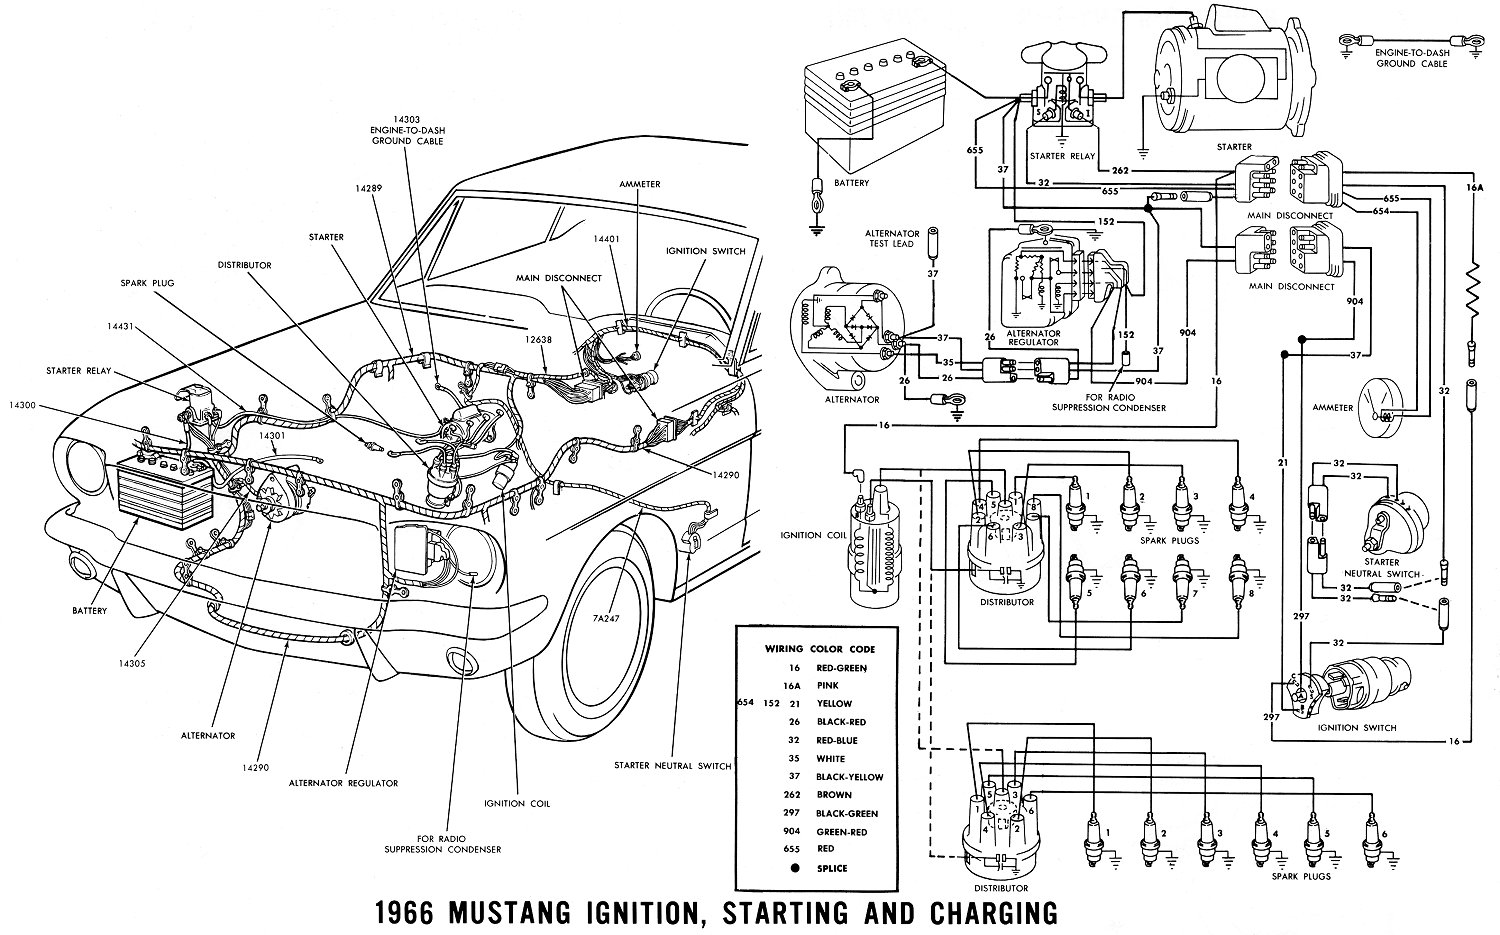 1966 Mustang Ignition Wiring Diagram in addition Injection Pump My 97 Leaking Oil Like Sob 268261 also Engine Diagram 2010 Mini Cooper Non S further 91 Dodge Dakota 5 2 Fuel Pump Wiring Diagram moreover  on mini cooper underneath diagram